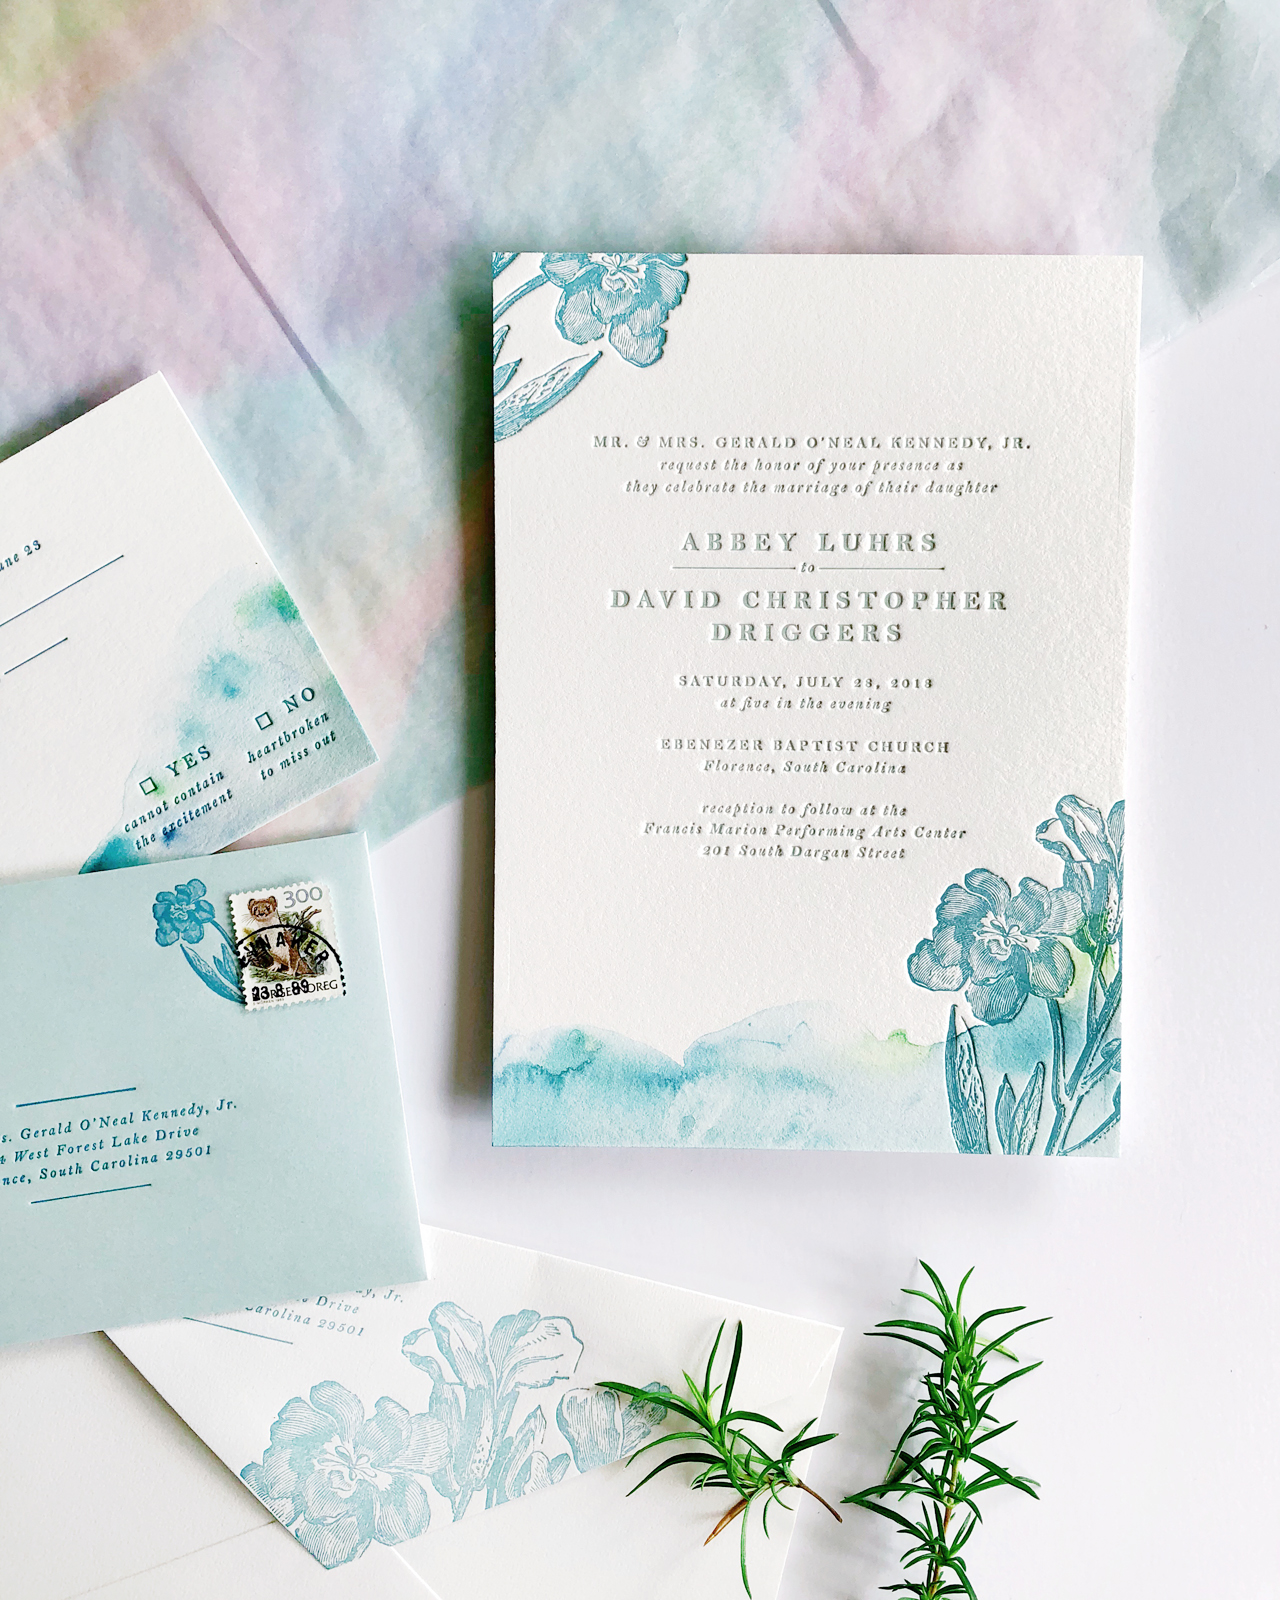 Aquamarine Watercolor and Letterpress Wedding Invitations by Iris and Marie Letterpress